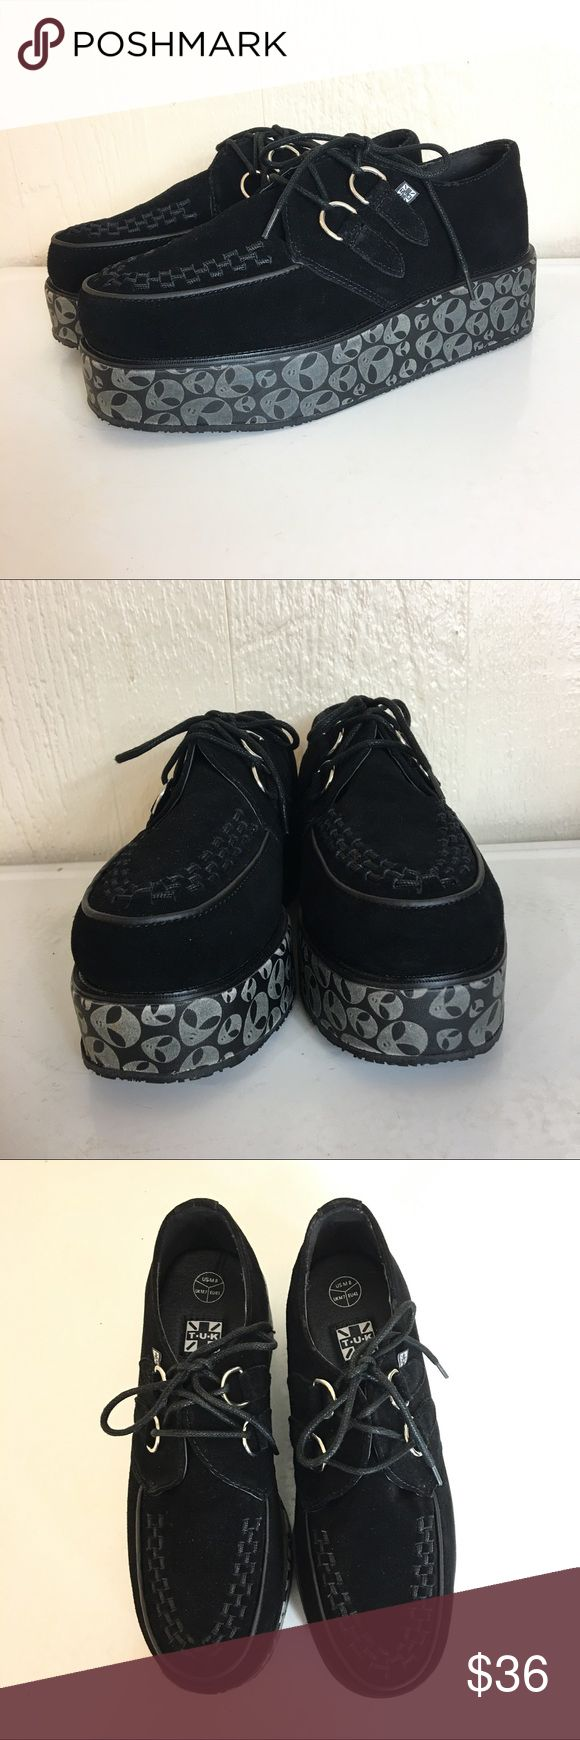 TUK Black Suede Creeper Glow Aliens NWOT 8 41 Awesome pair of British T.U.K. Creepers with glow in the dark alien soles. New without tags, no flaws.  Size UK men's 8, EU 41, US men's 8. T.U.K. Shoes Oxfords & Derbys